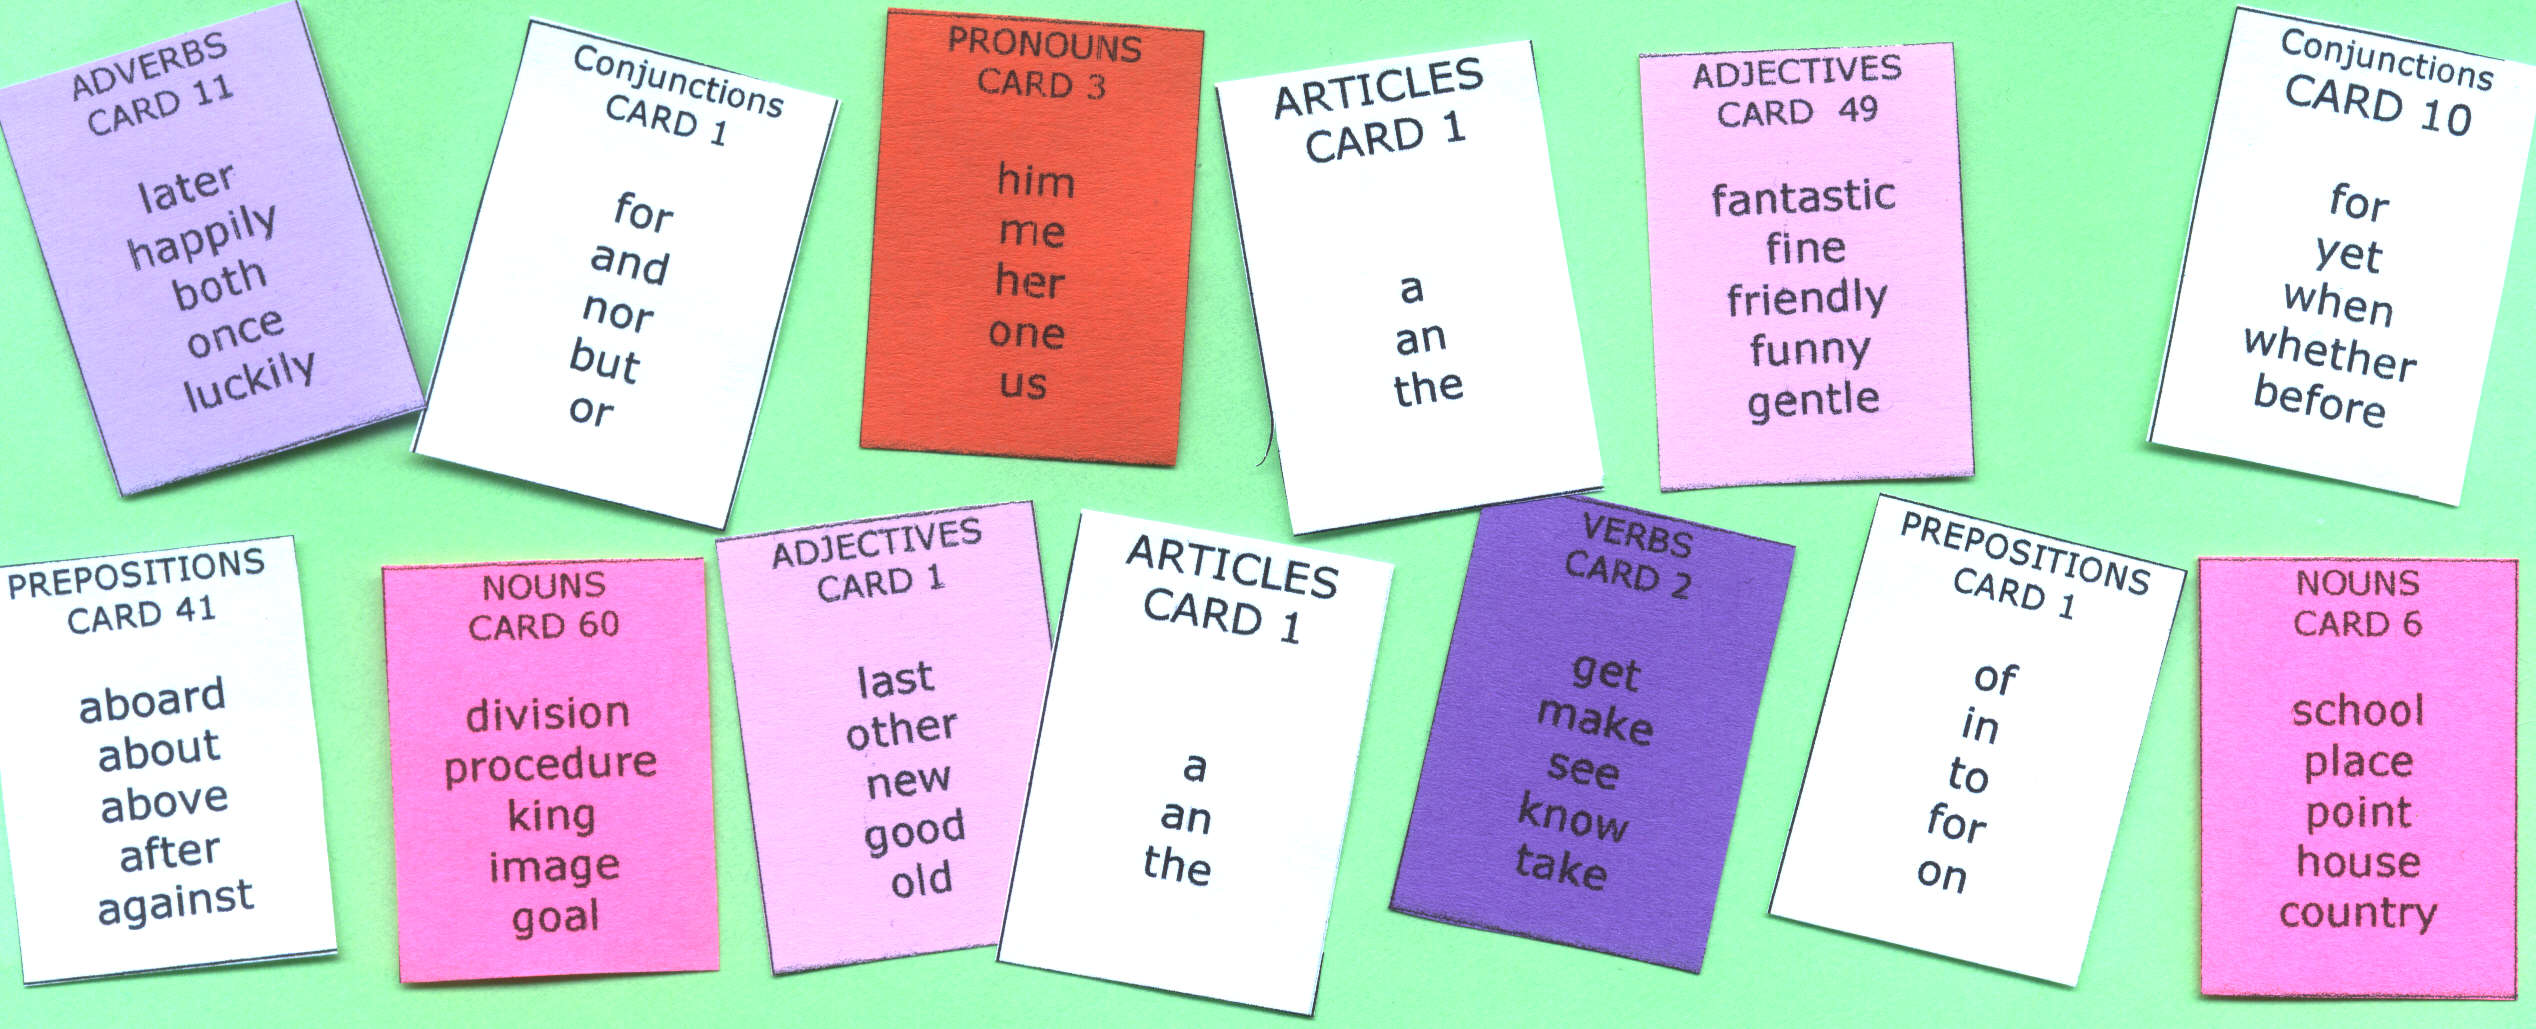 Sentence Master Practice Word Cards include Conjunction Cards, Article Cards, Verb Cards, Noun Cards, Pronoun Cards, Preposition Cards, Adverb Cards and Adjective Cards 